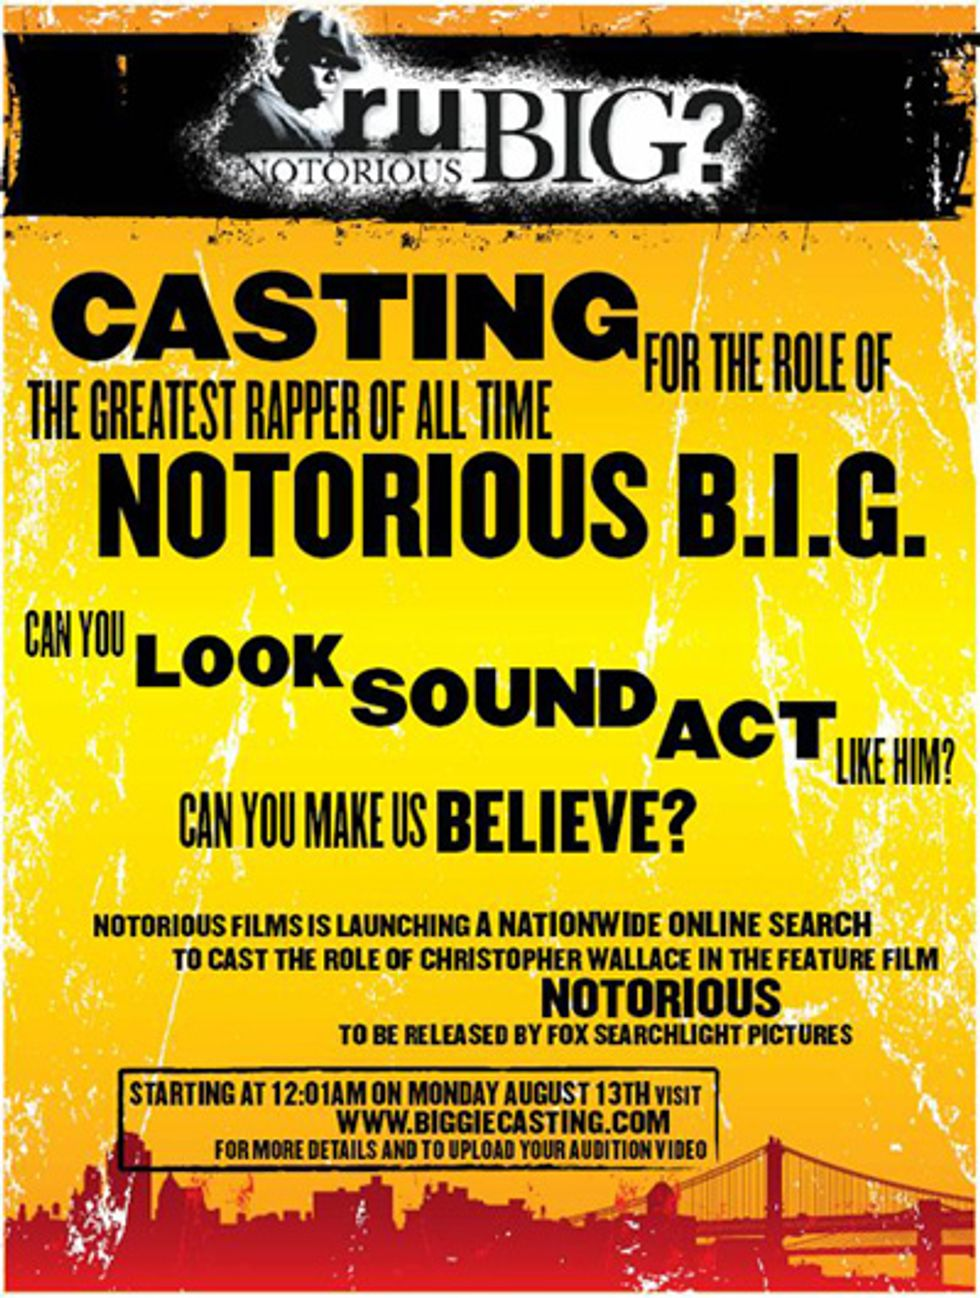 Do You Have What it Takes to Be the Next Notorious B.I.G.?